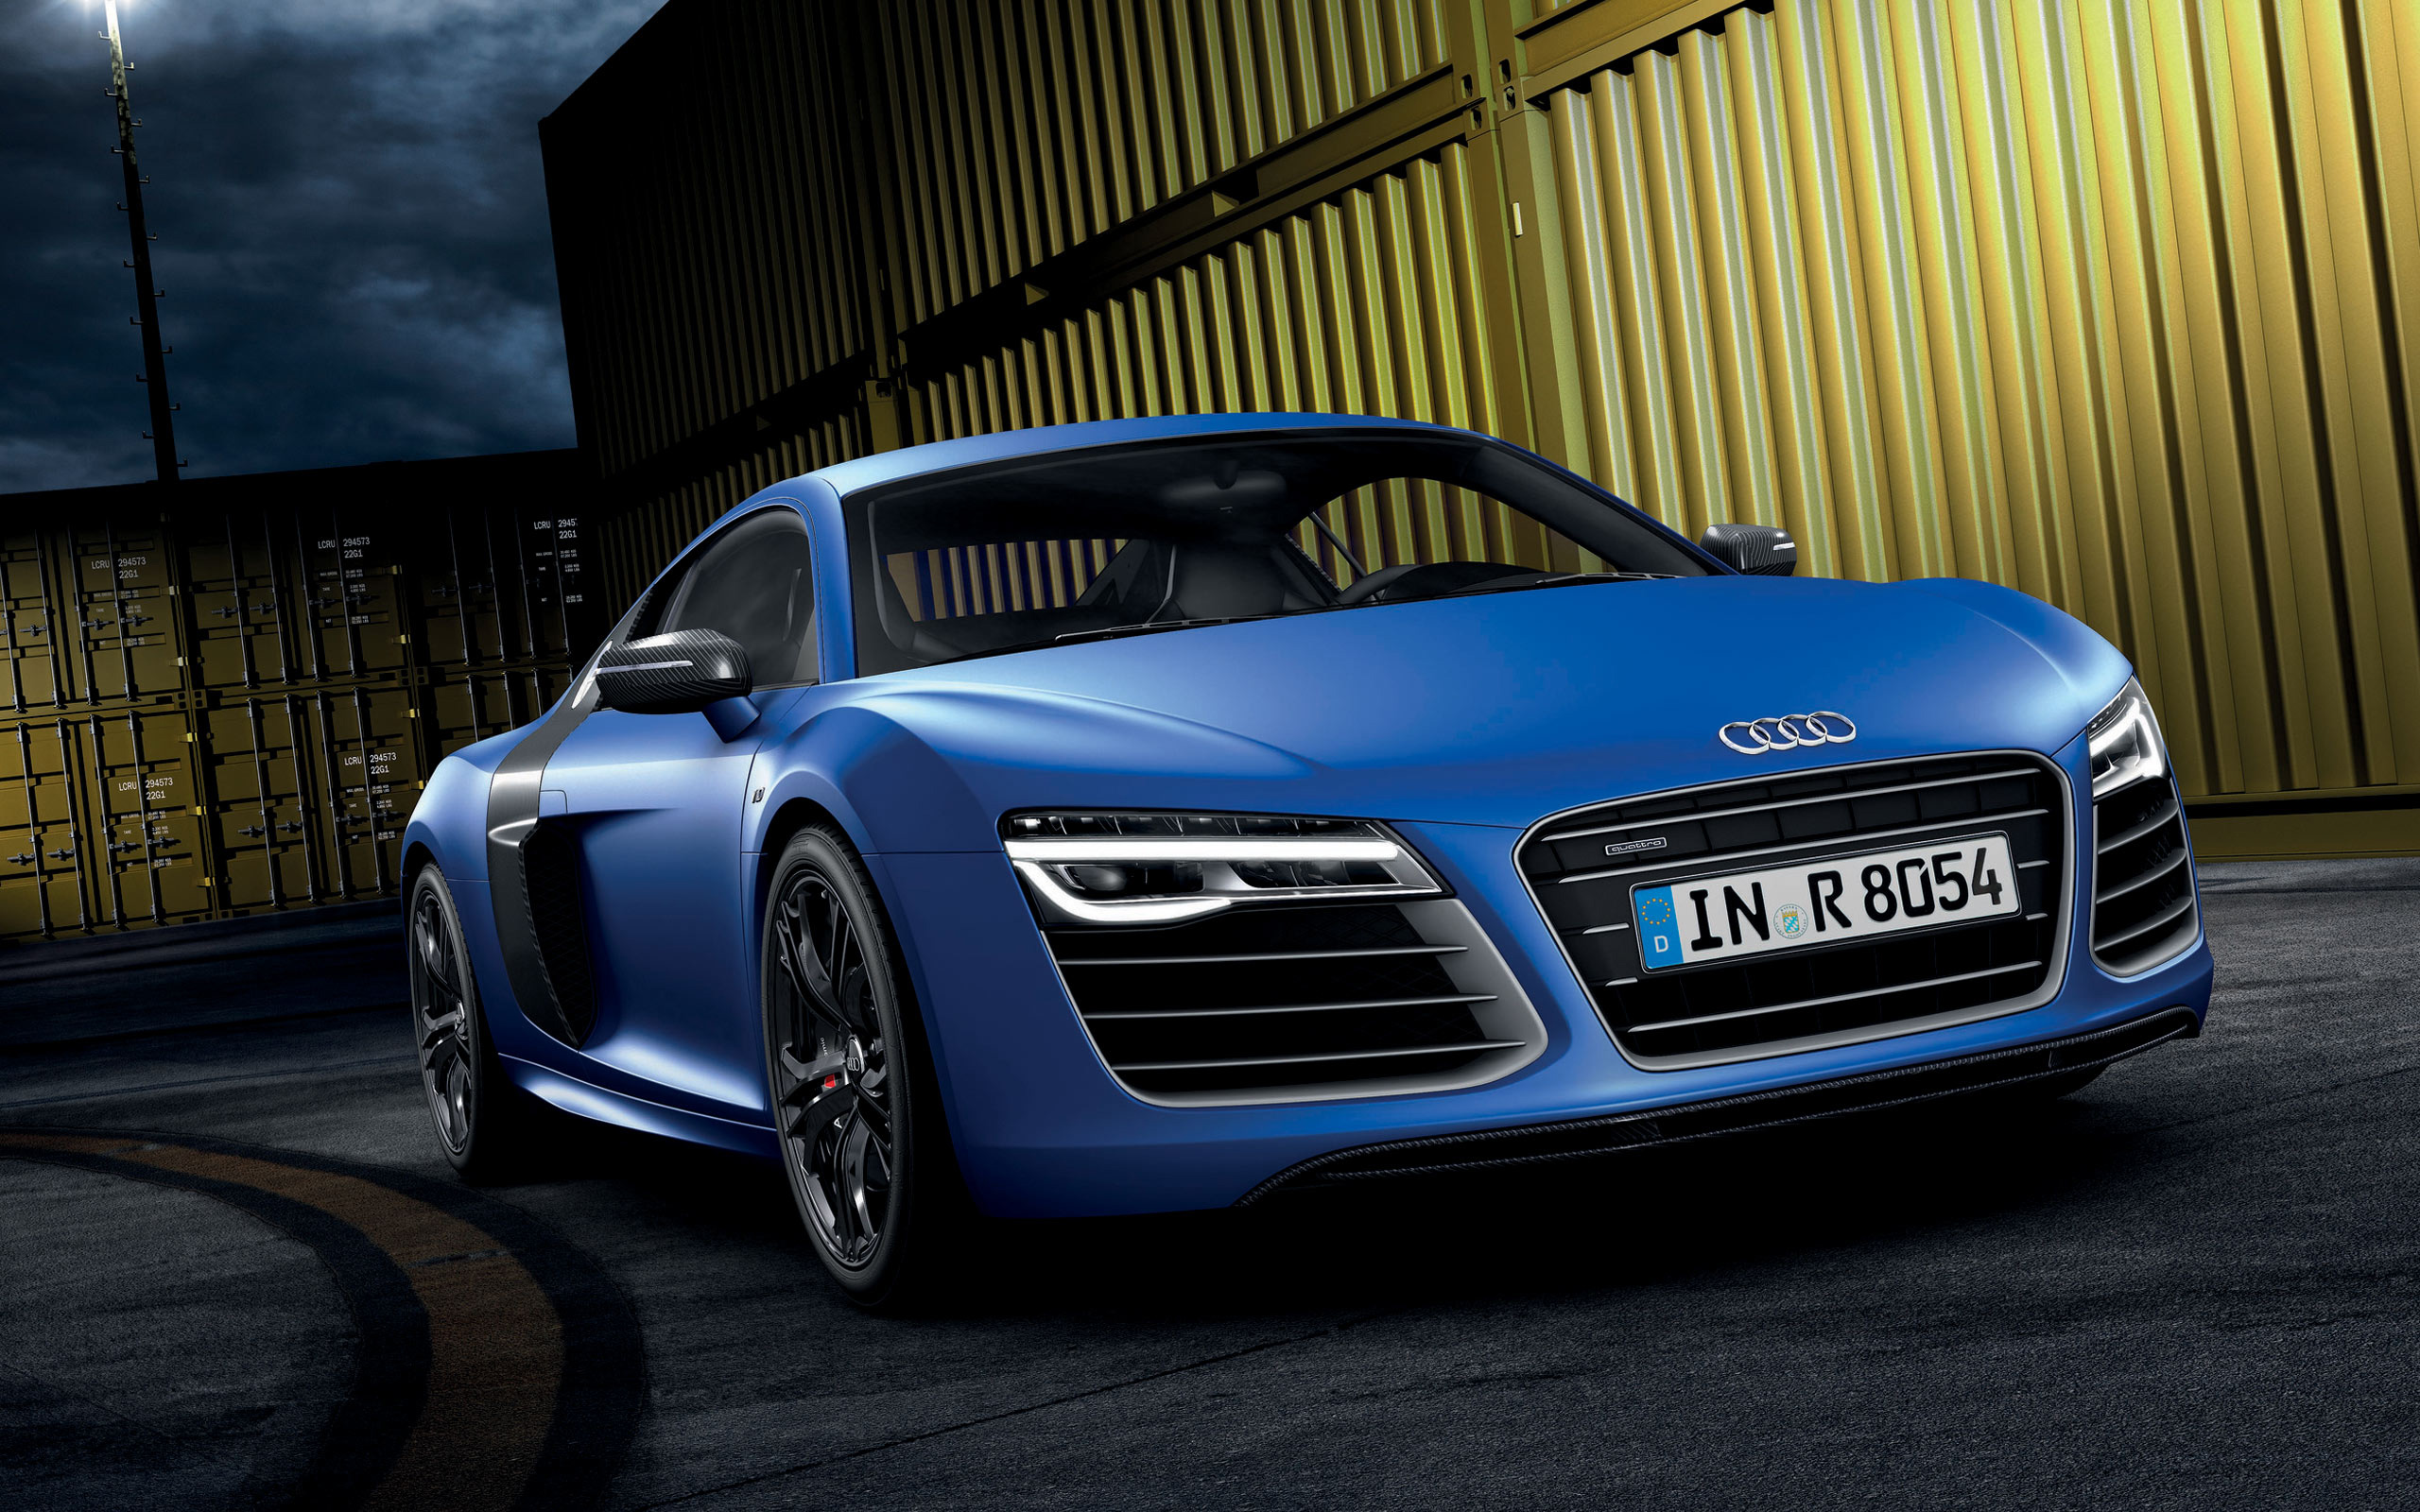 2013 Audi R8 V10 Plus Wallpaper HD Car Wallpapers 2560x1600